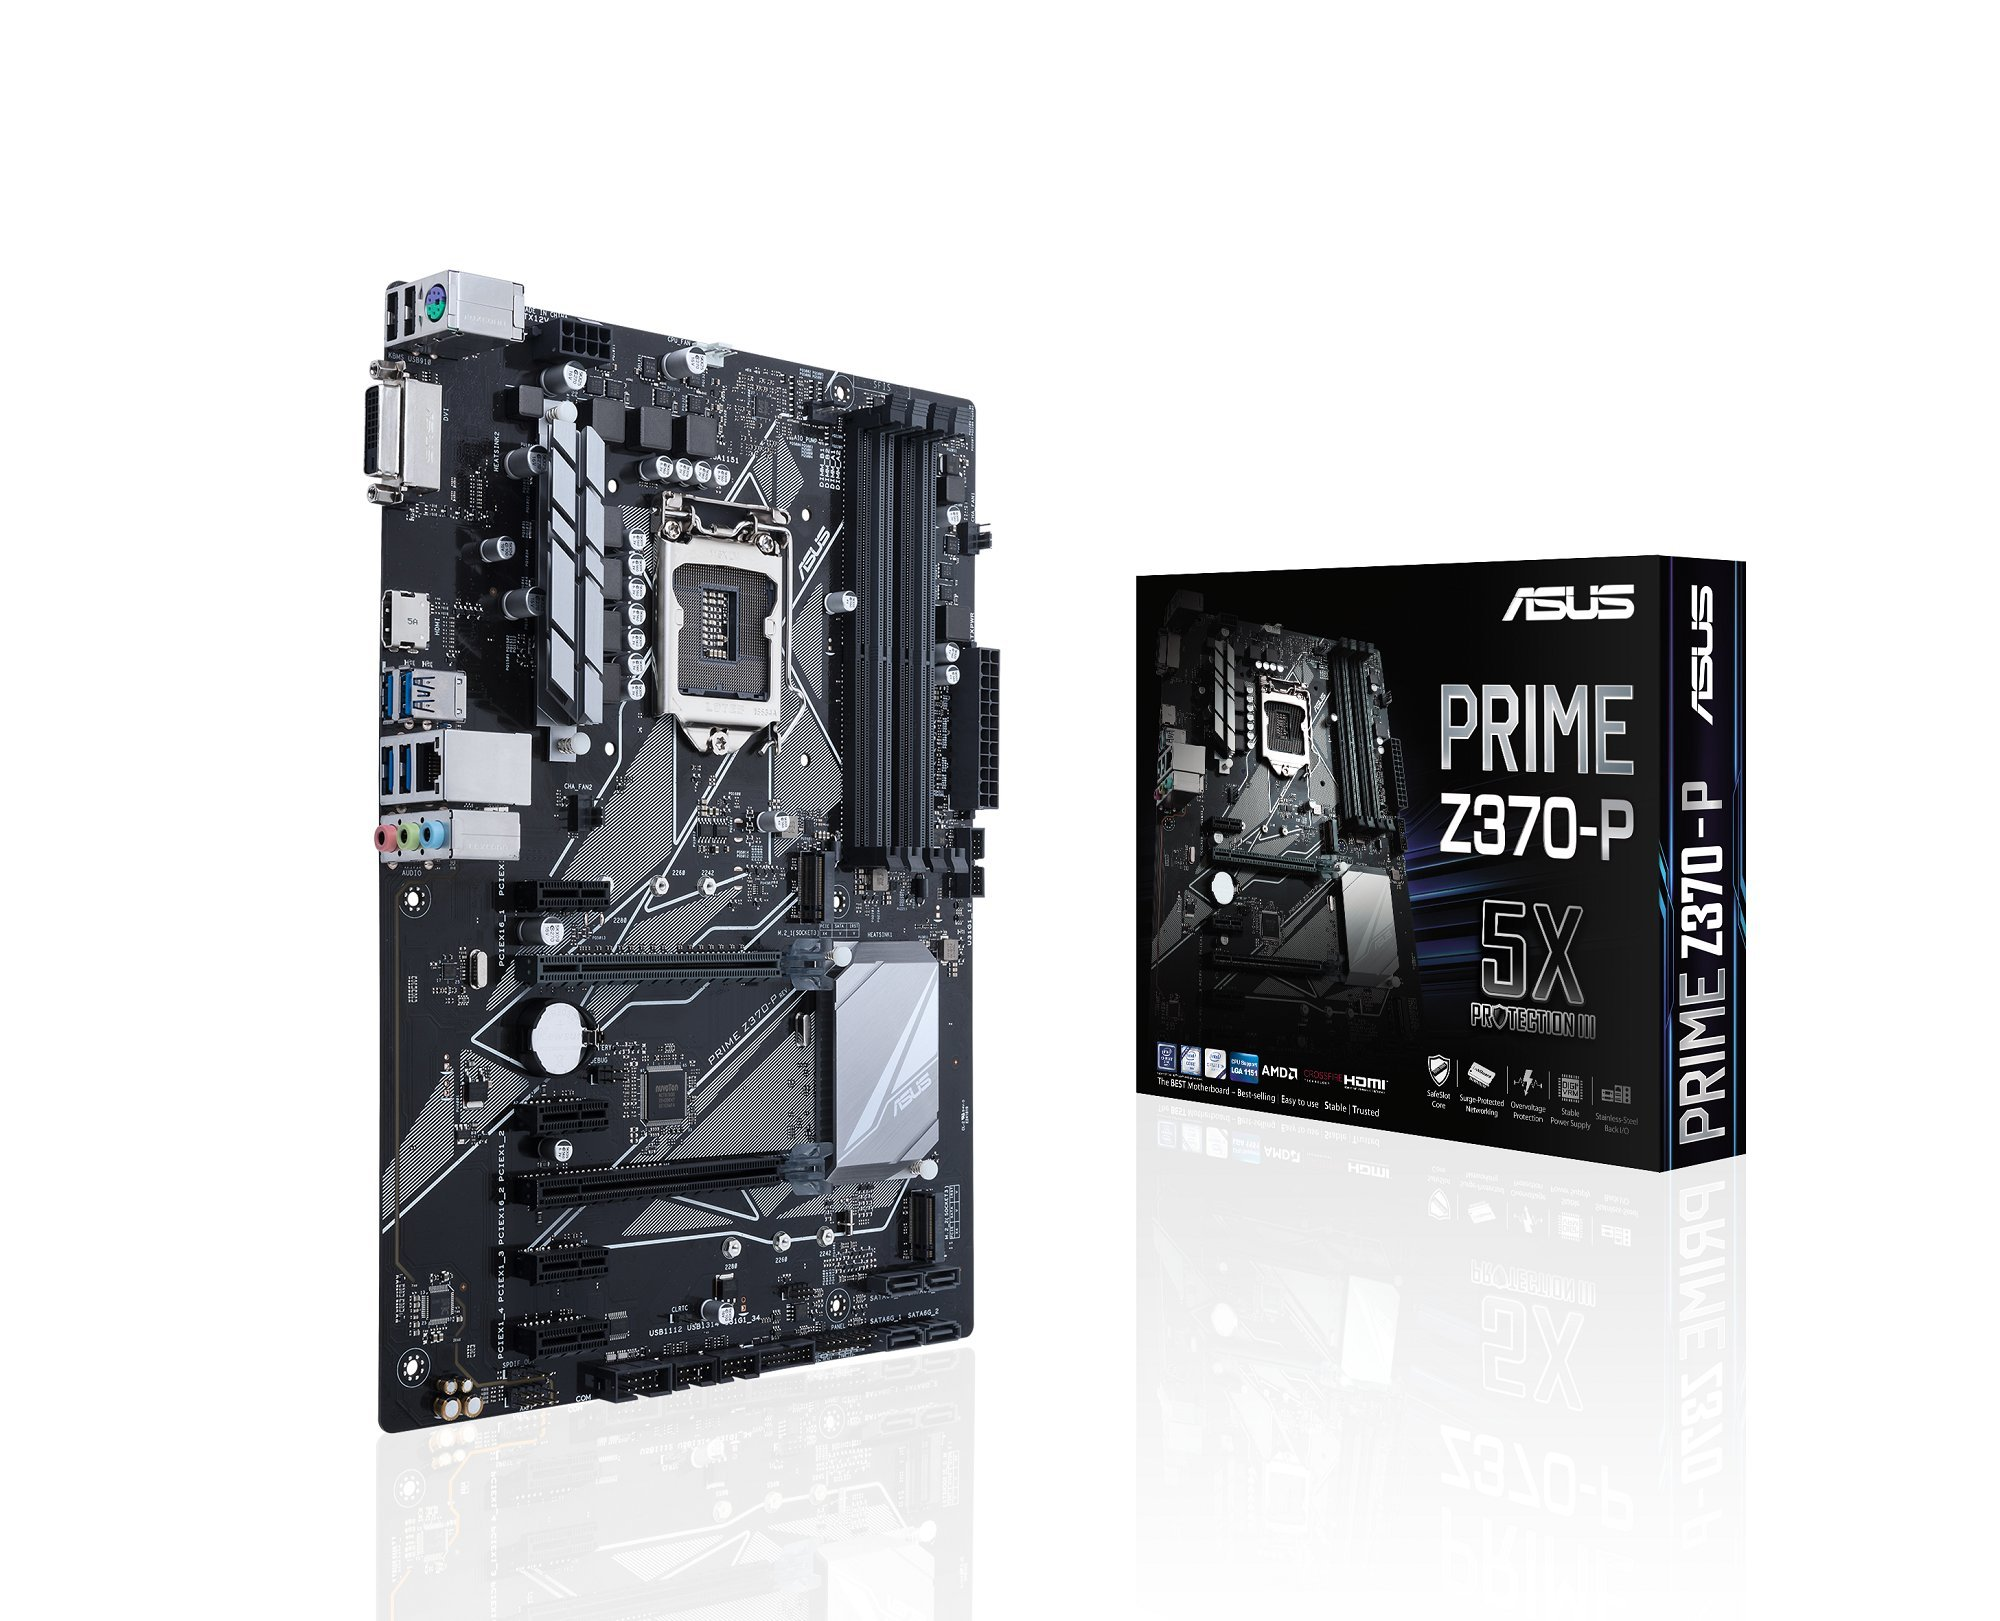 ASUS PRIME Z370-P LGA1151 DDR4 HDMI DVI M.2 Z370 ATX Motherboard with USB 3.1 for 8th Generation Intel Core Processors by Asus (Image #1)